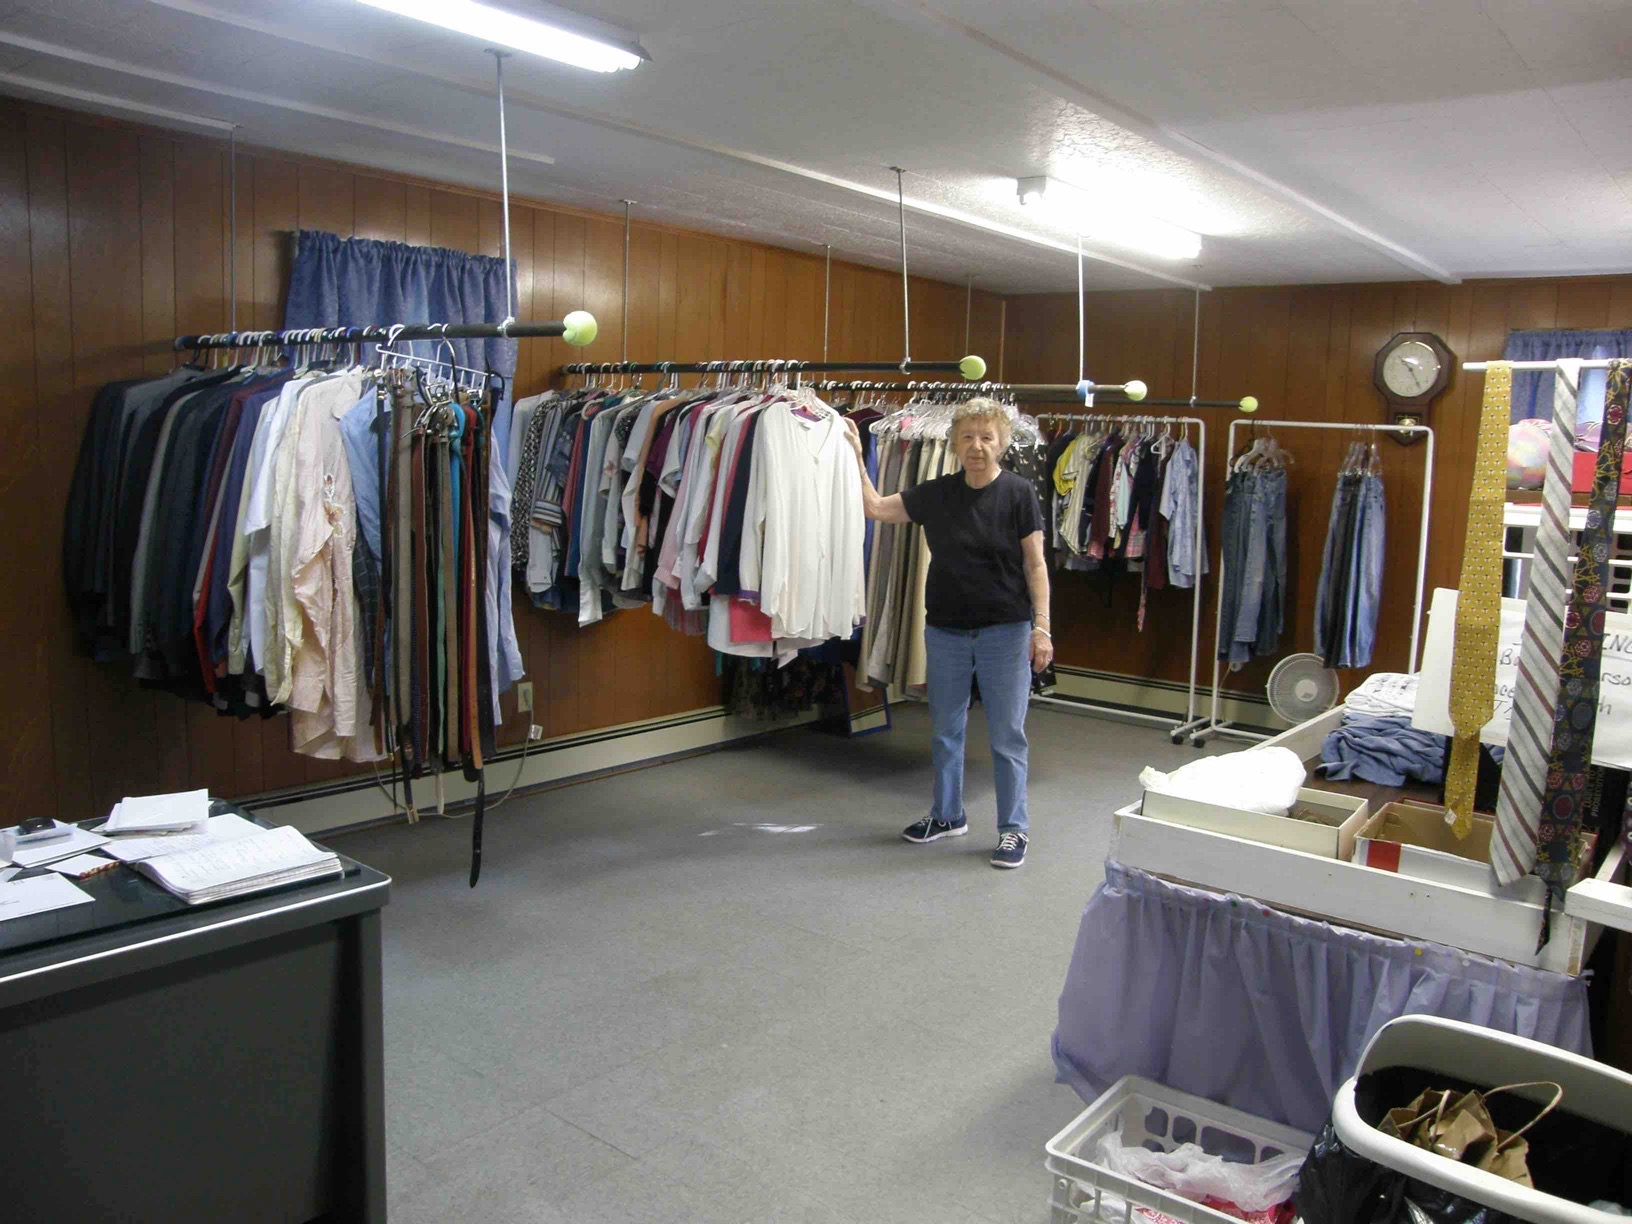 The Clothes Closet Located Upstairs In Our Pantry Building Offers Clothing For Men Women And Children At No Charge